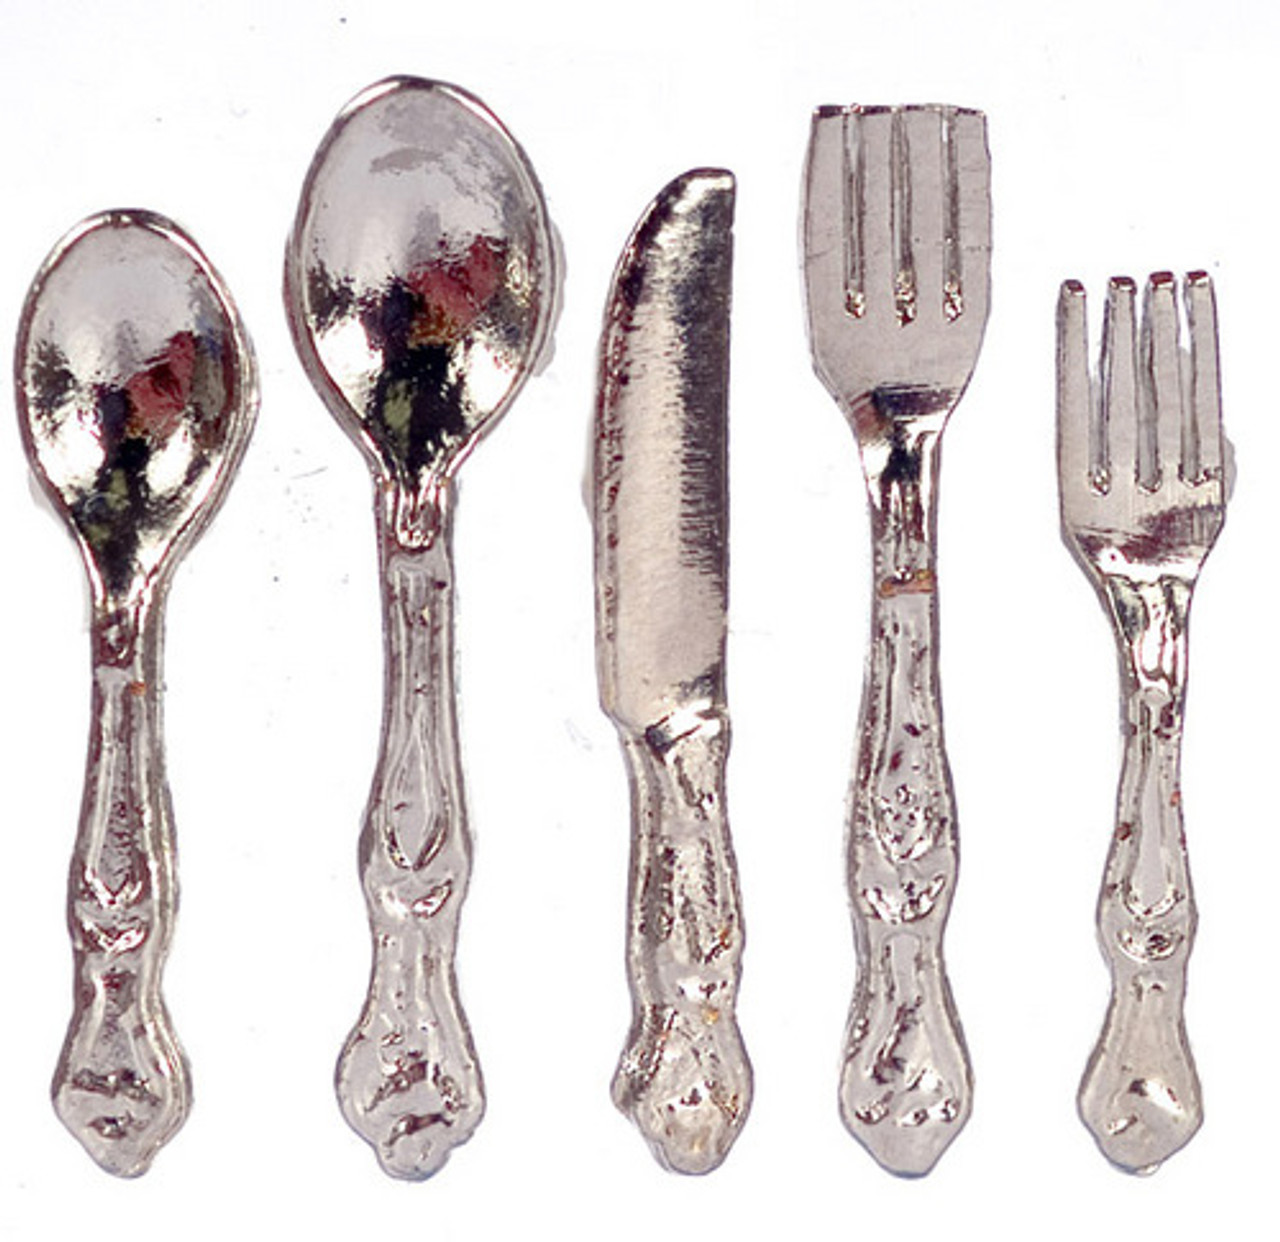 Dollhouse City - Dollhouse Miniatures Silverware Set